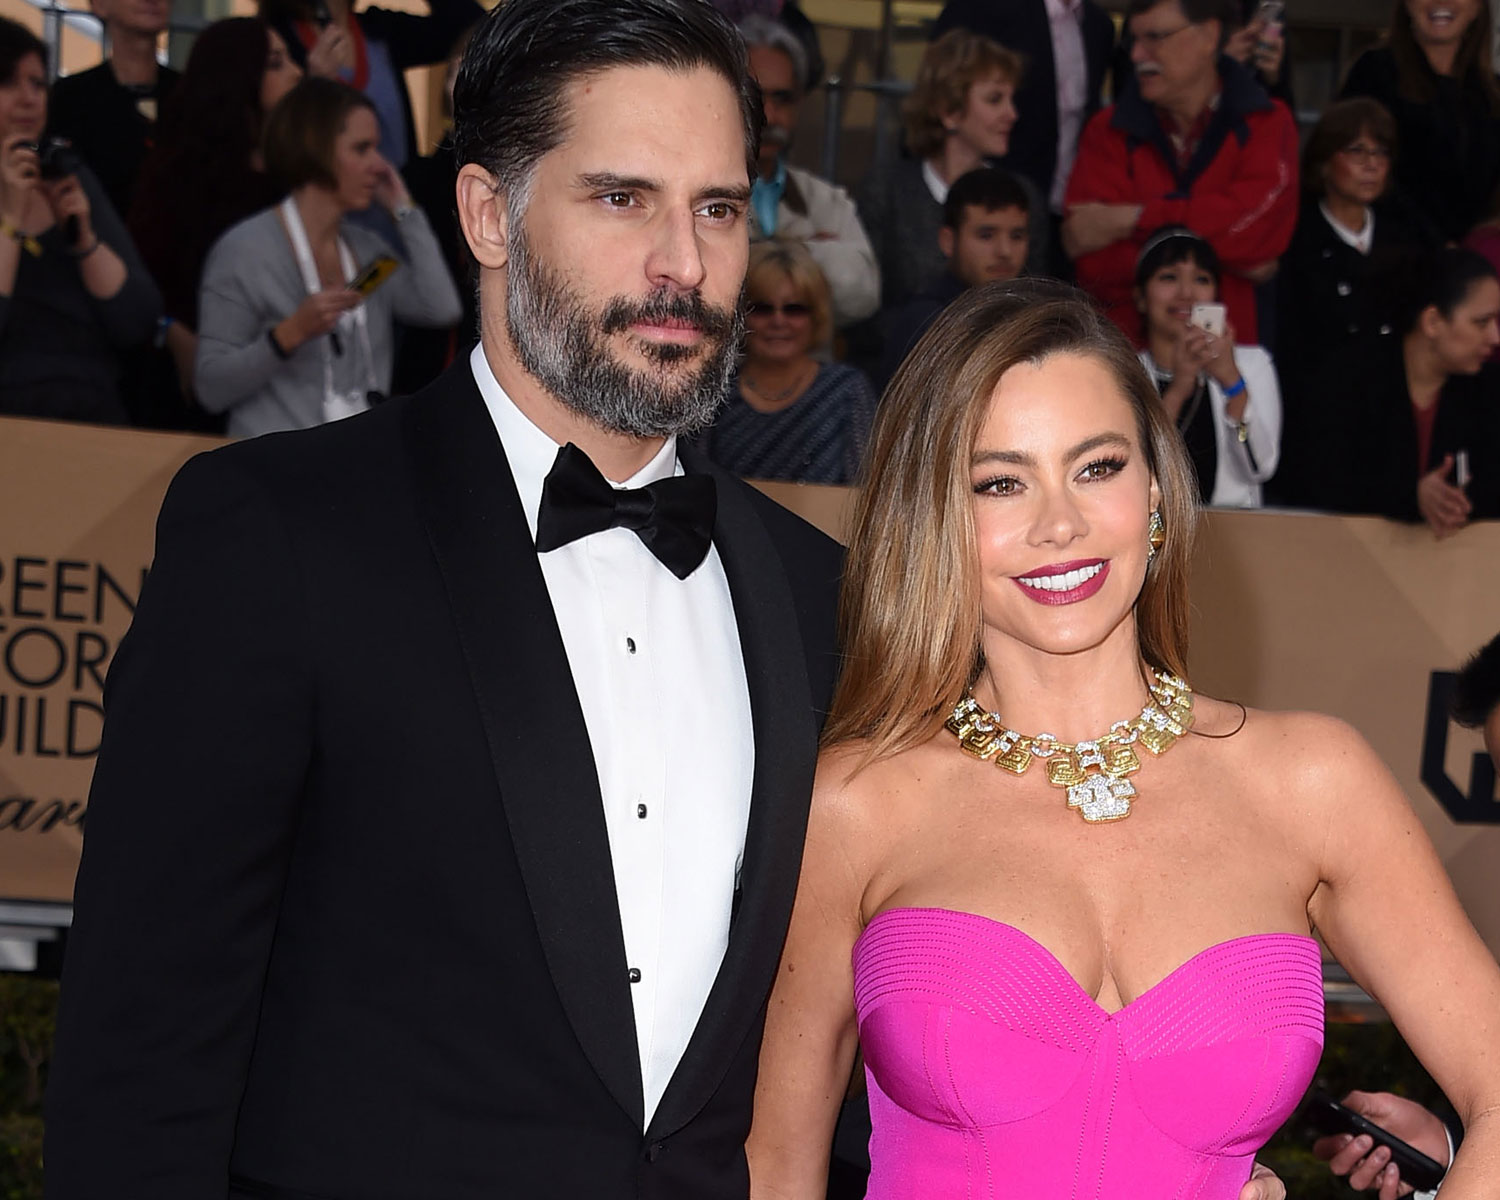 Sofia Vergara Has Accepted Her Husbands Obsession With